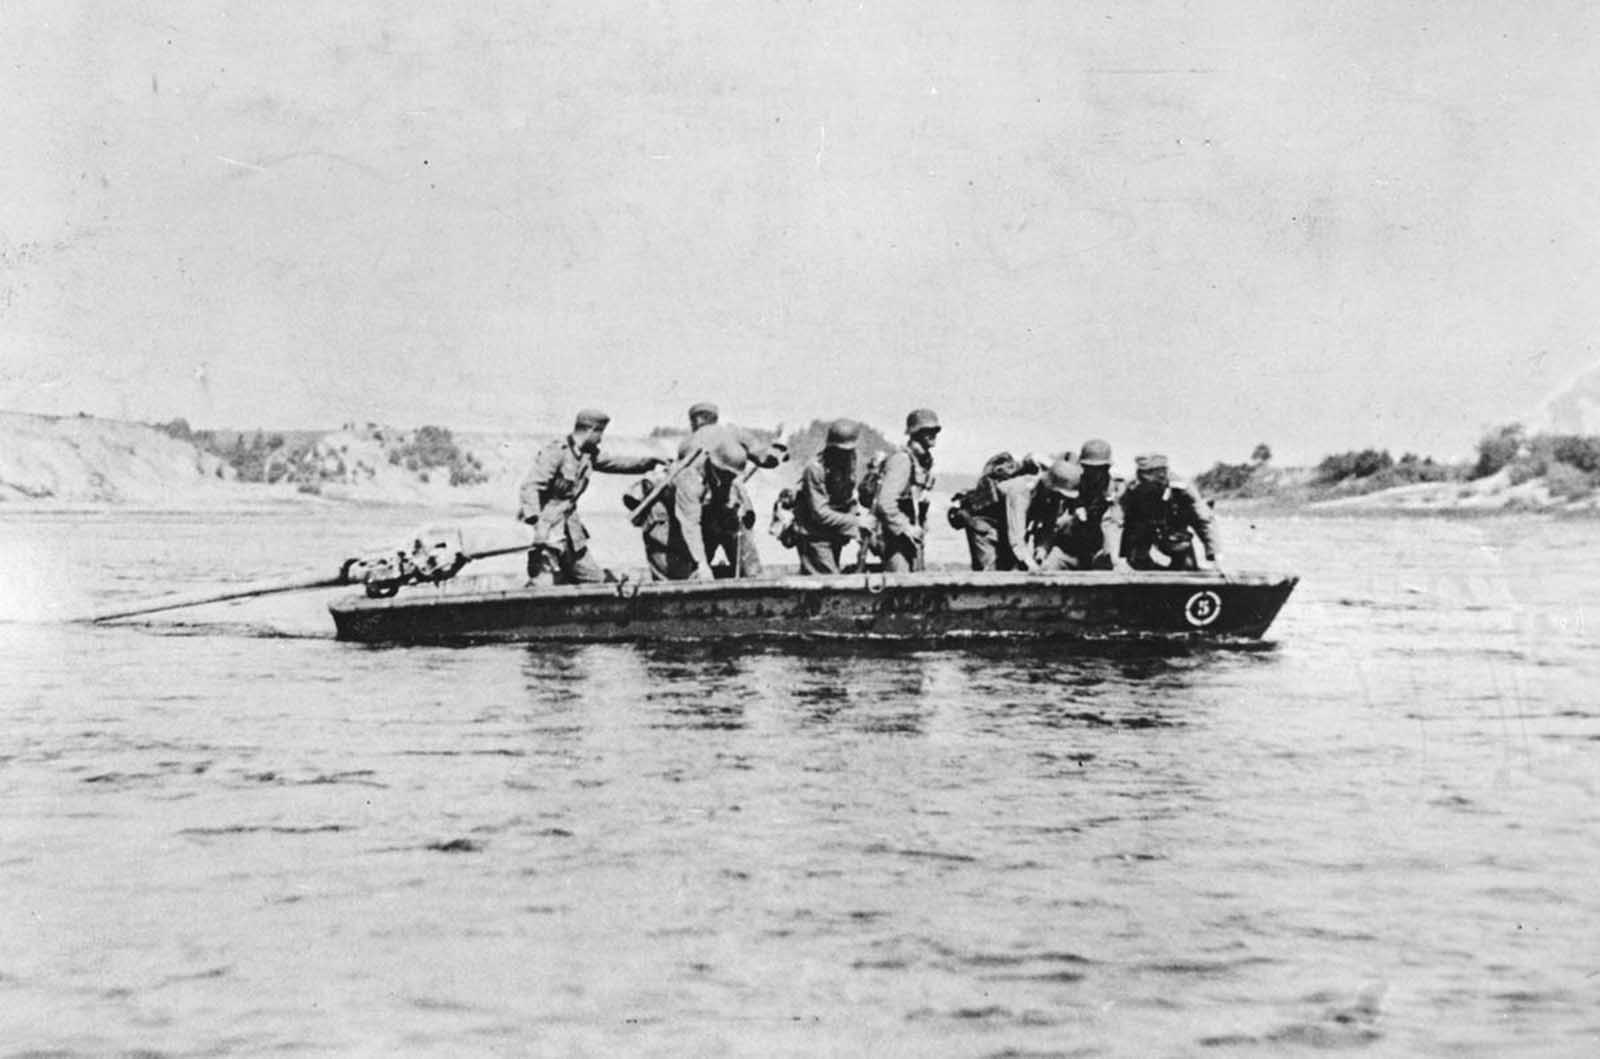 German soldiers cross a river, identified as the Don river, in a stormboat, sometime in 1941, during the German invasion of the Caucasus region in the Soviet Union.